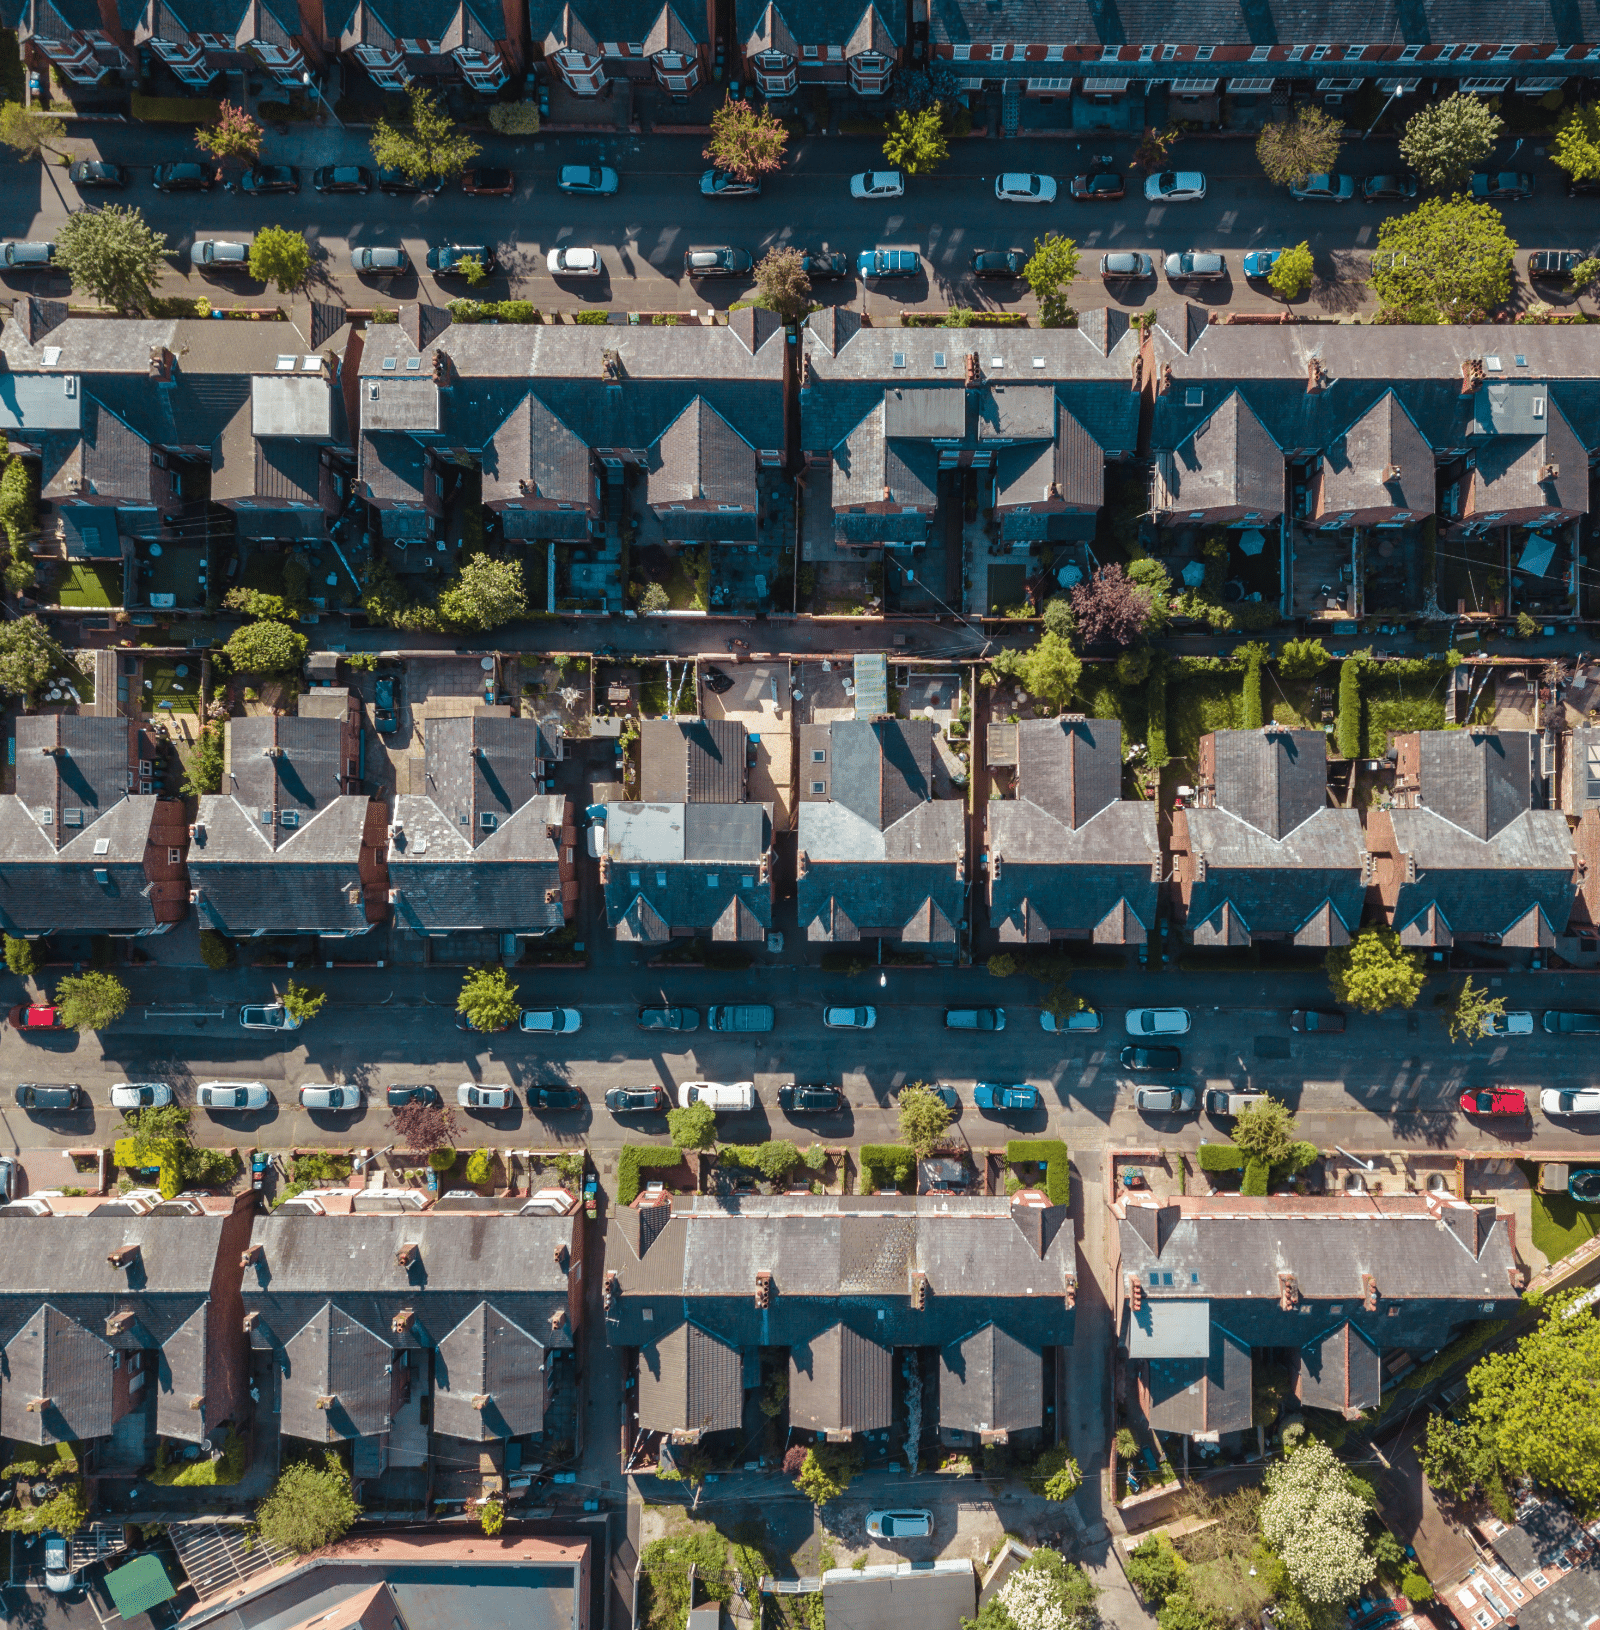 Bird's eye view of houses and streets